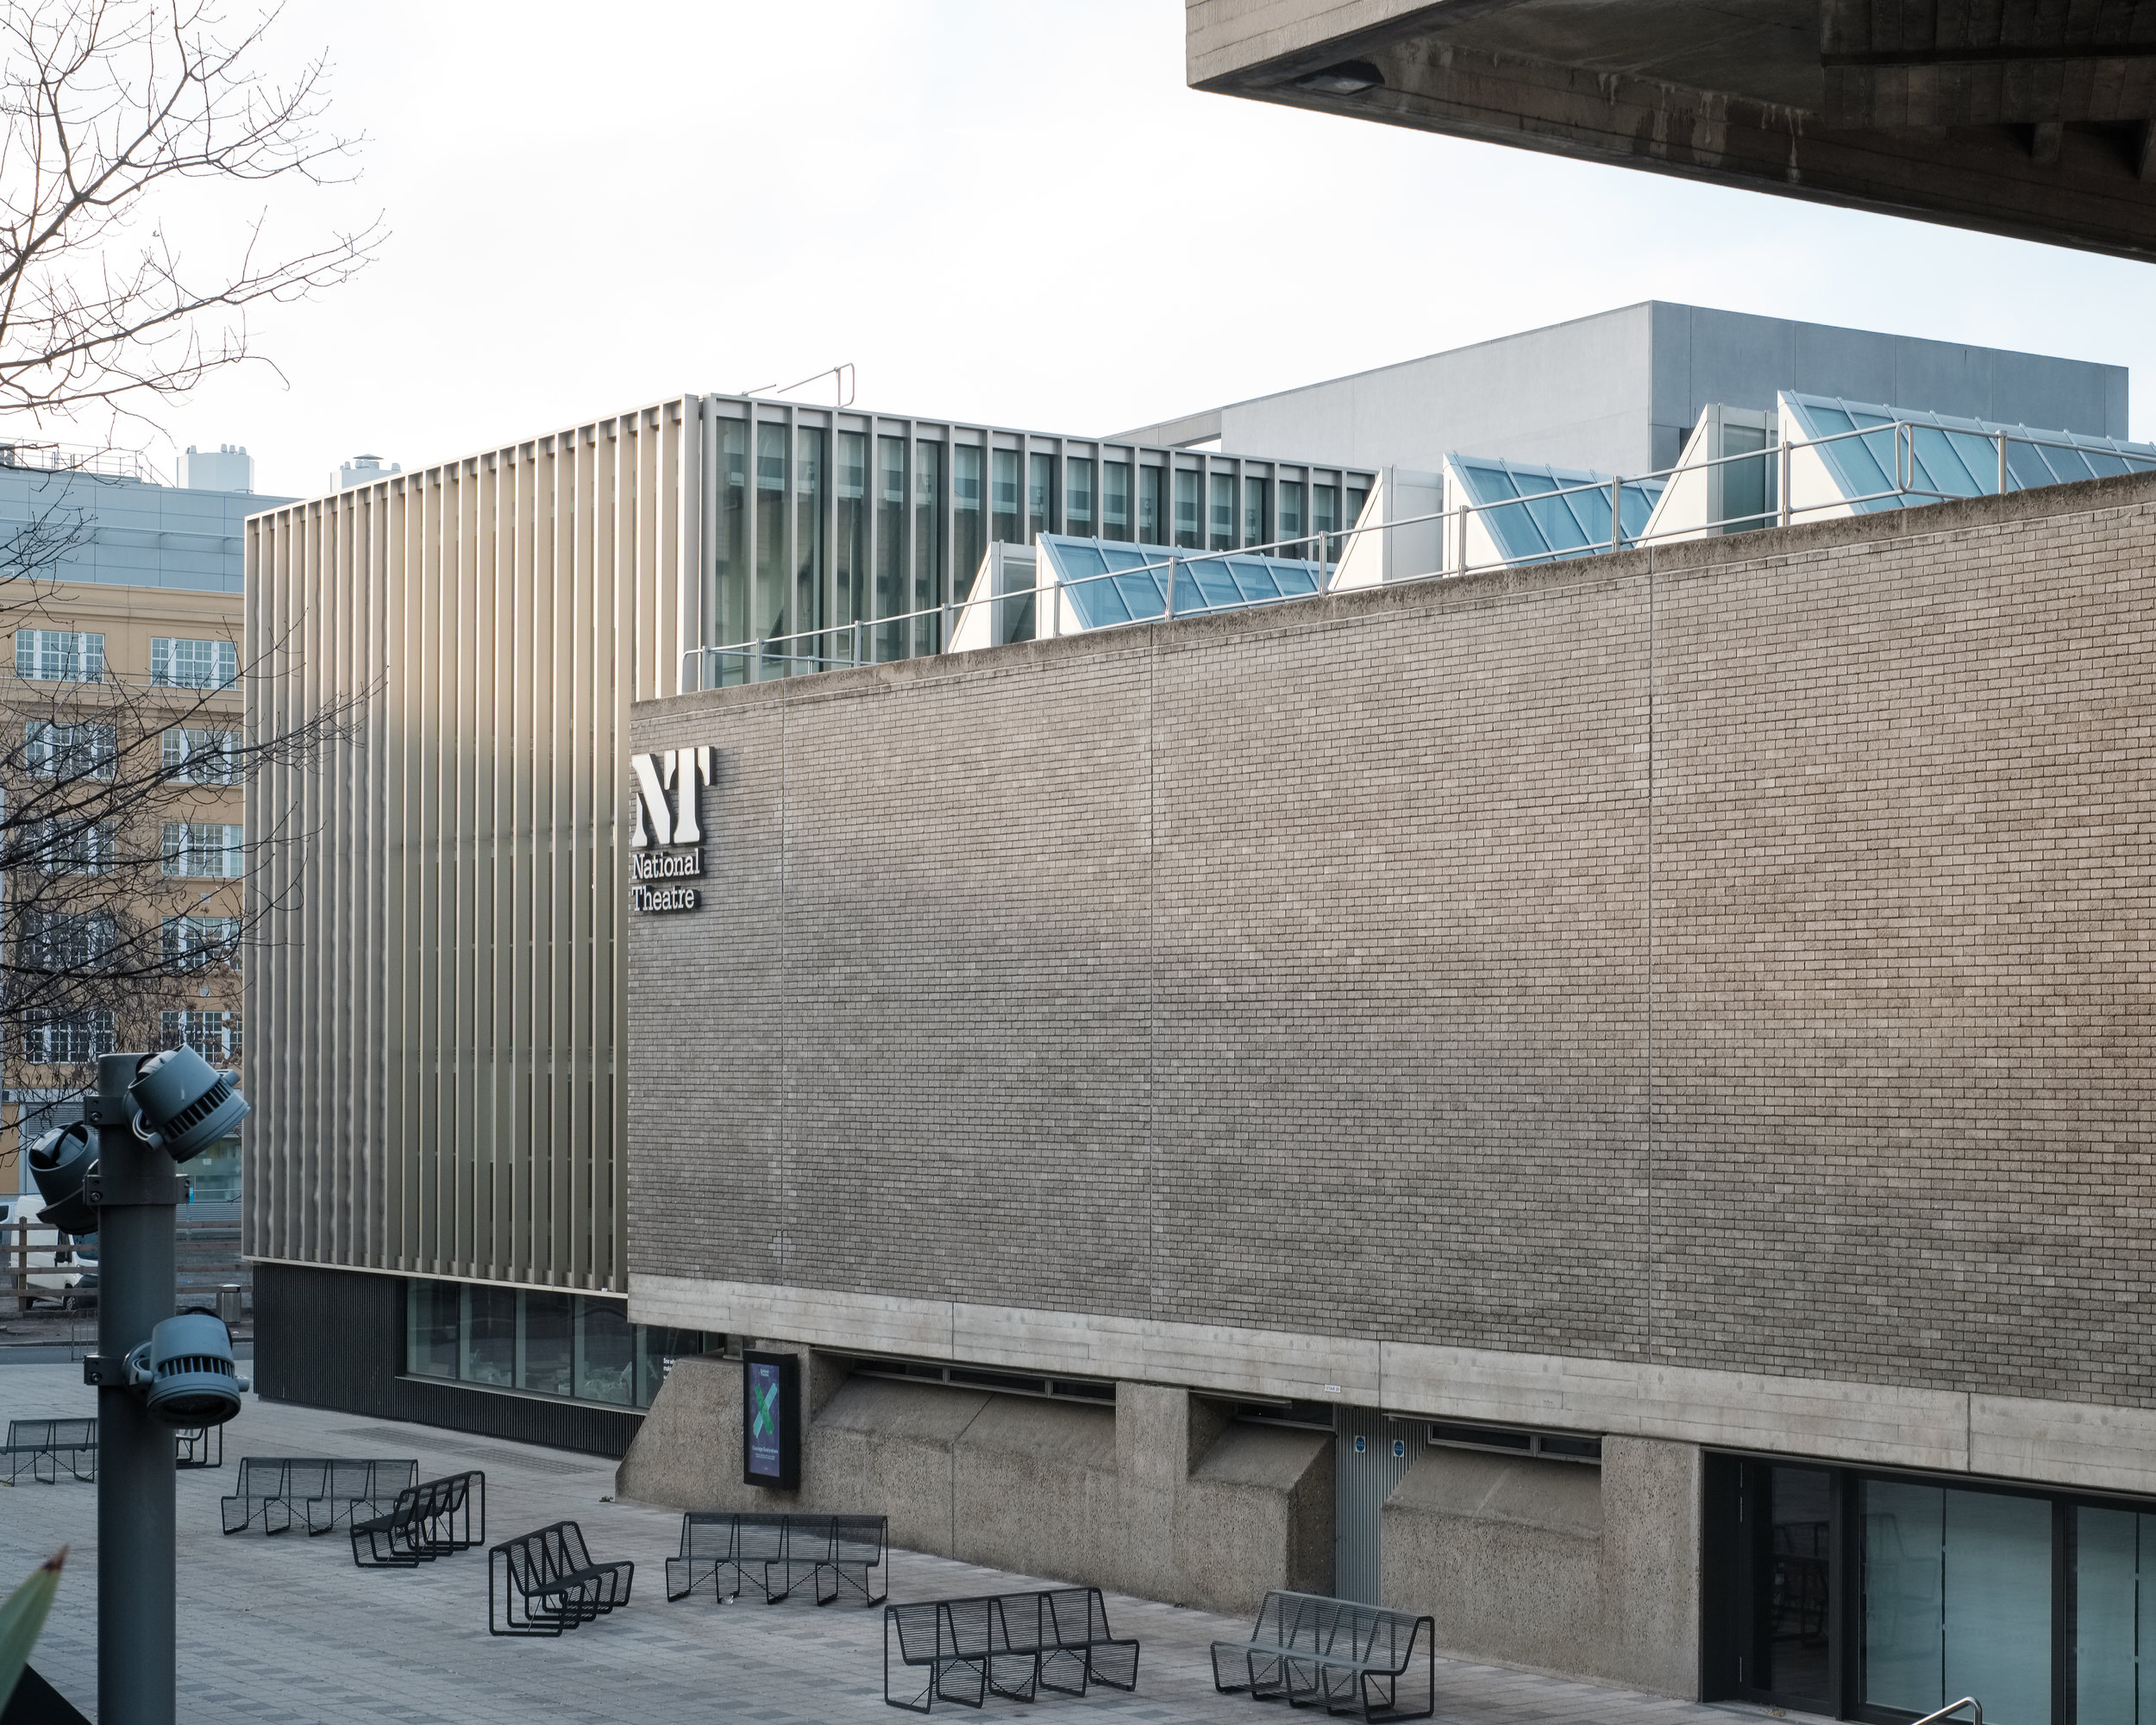 National Theatre Max Rayne Centre